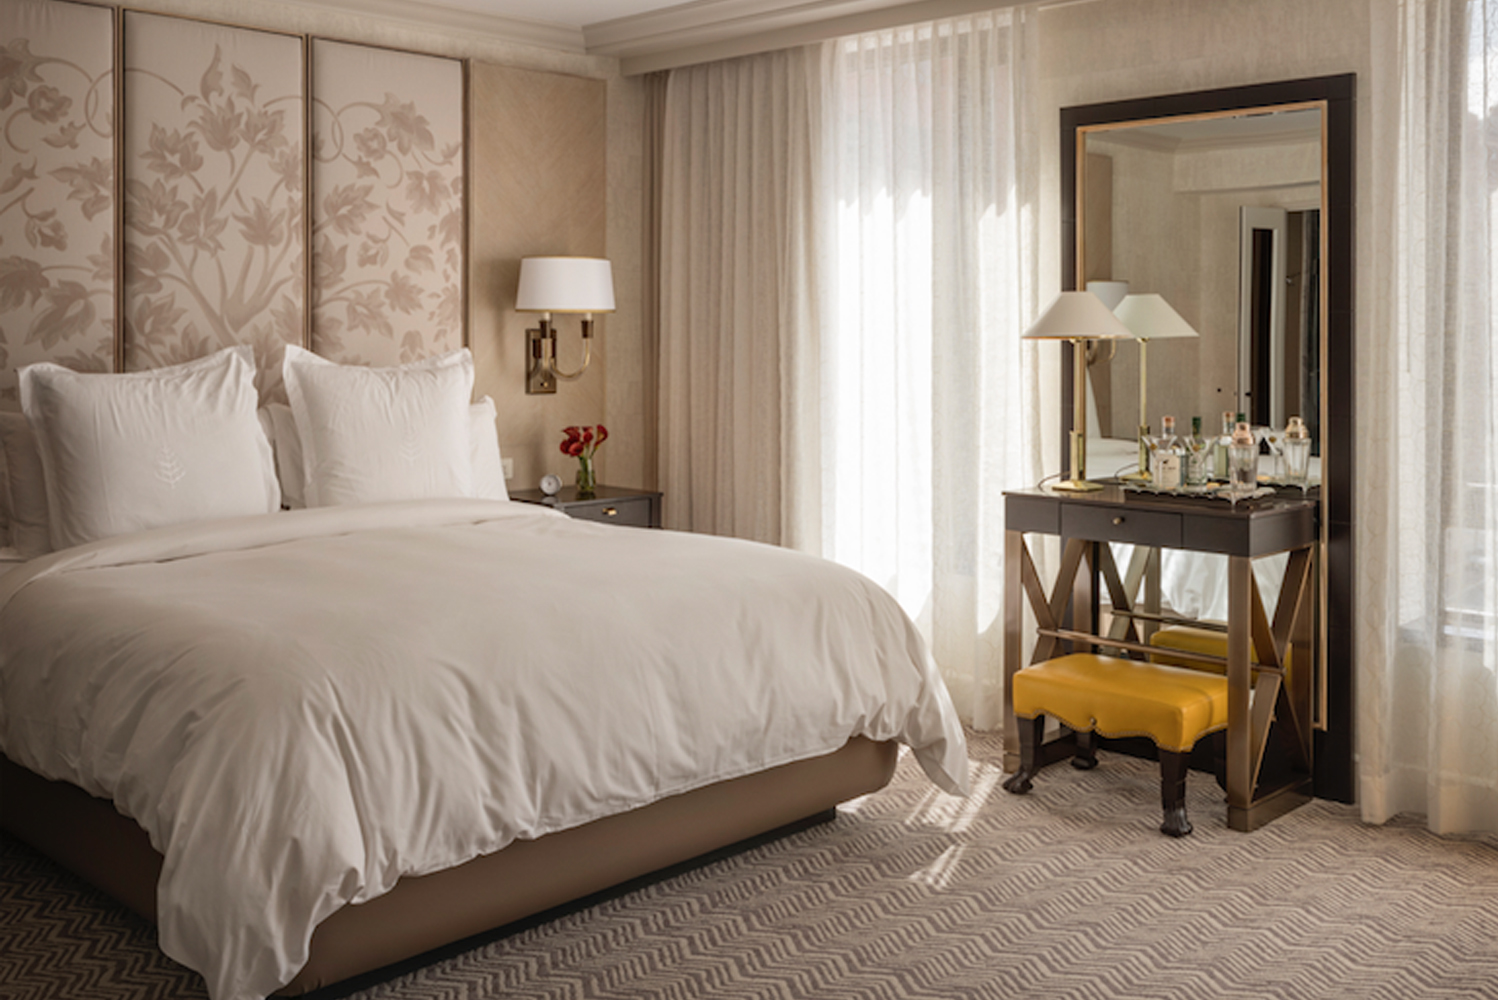 There is a headboard of whitewashed oak and upholstered inset panels, as well as eclectic groupings of mirrors and artworks.